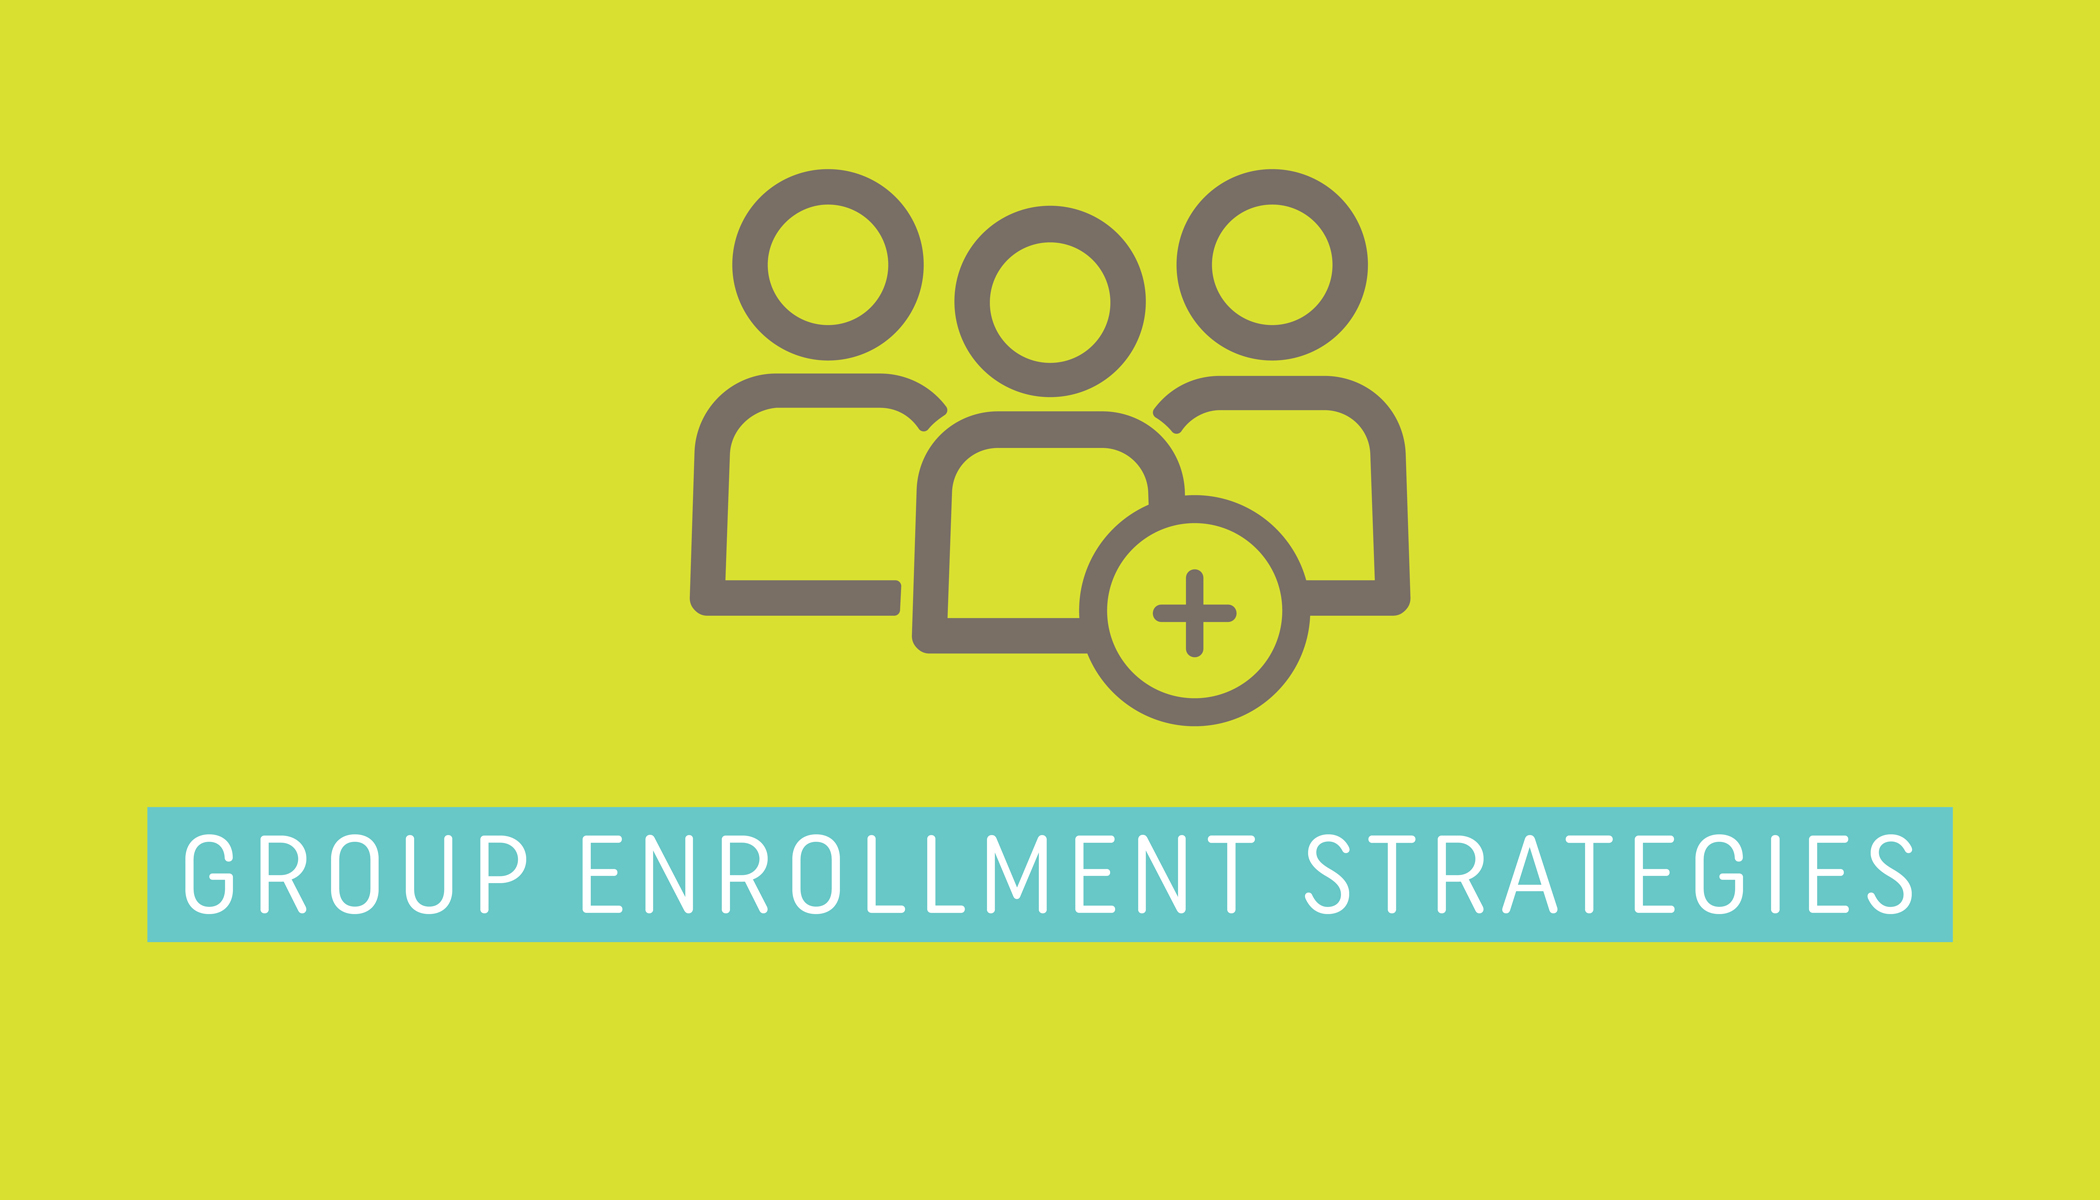 Group Enrollment Strategies